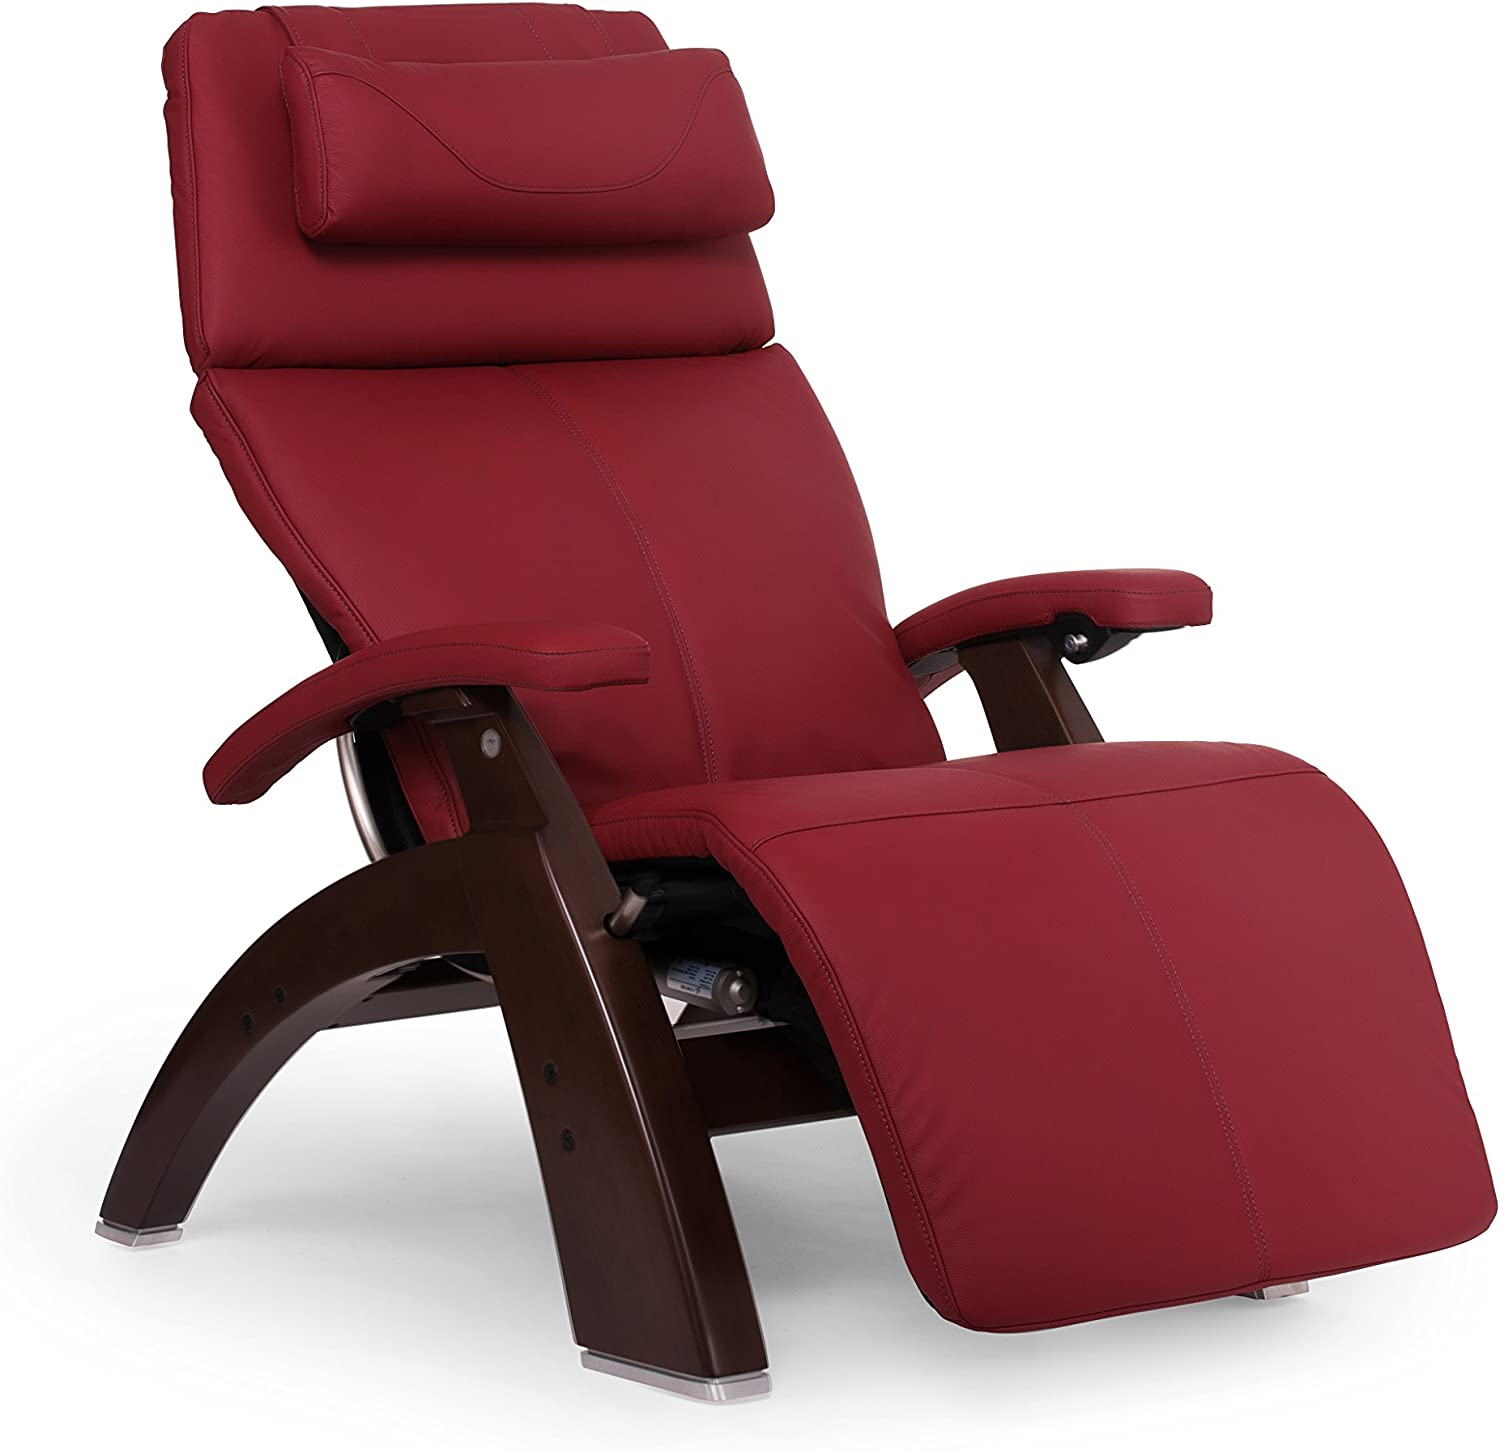 "Perfect Chair ""PC-610 Omni-Motion Classic"" Top Grain Leather Zero Gravity Recliner, Red"